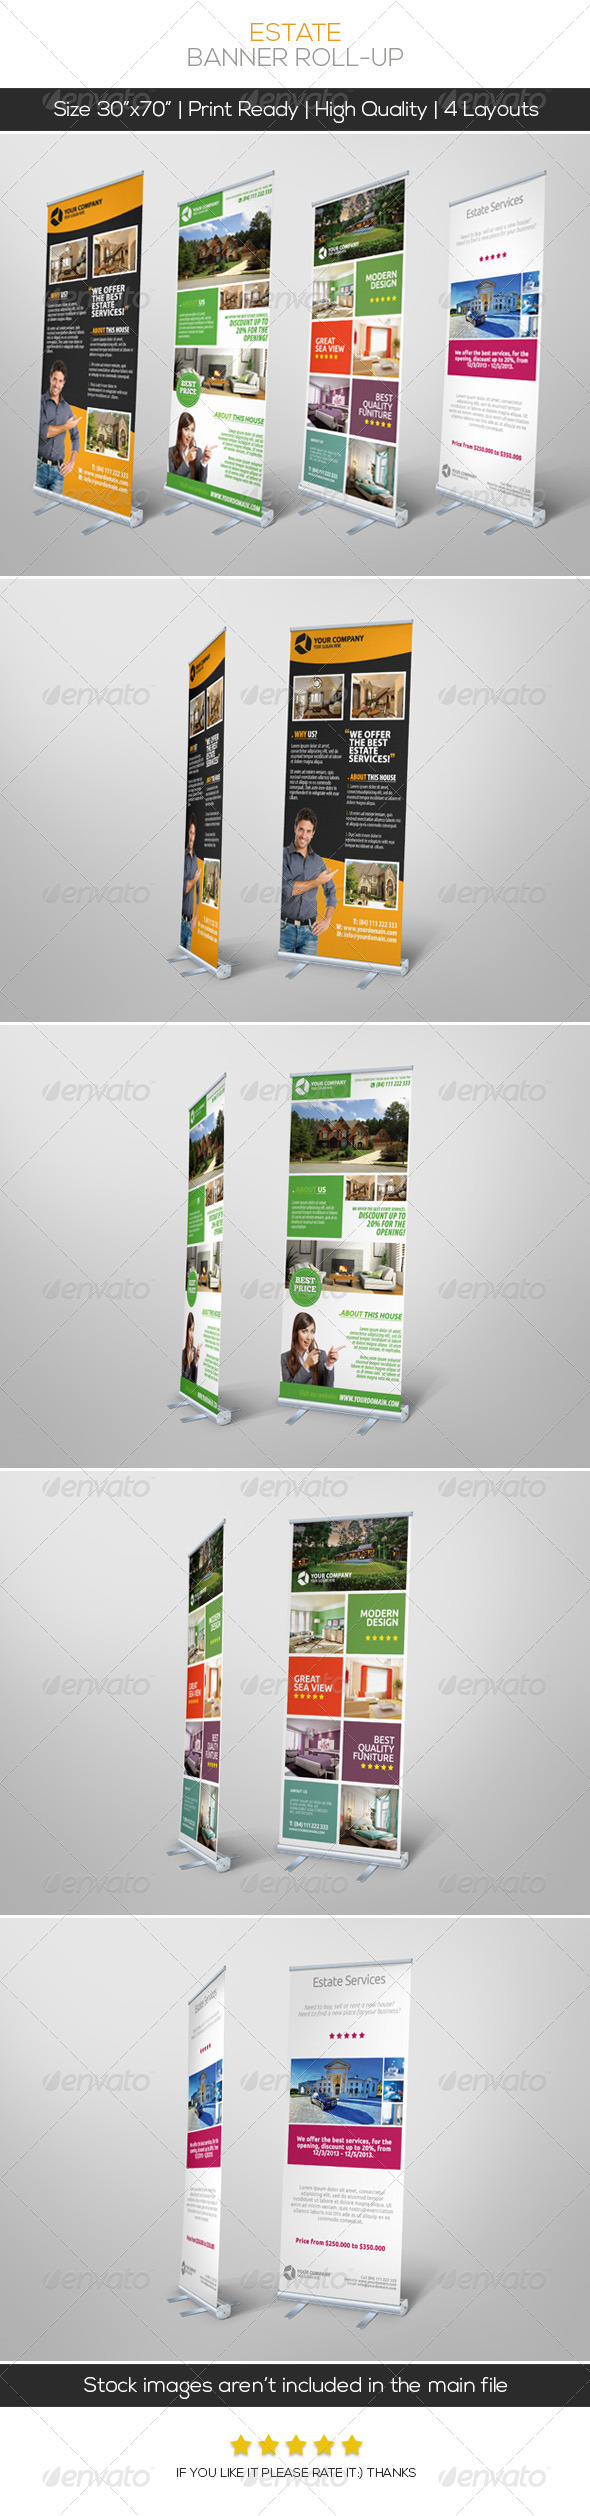 GraphicRiver Premium Estate Banner Roll-up 4943741